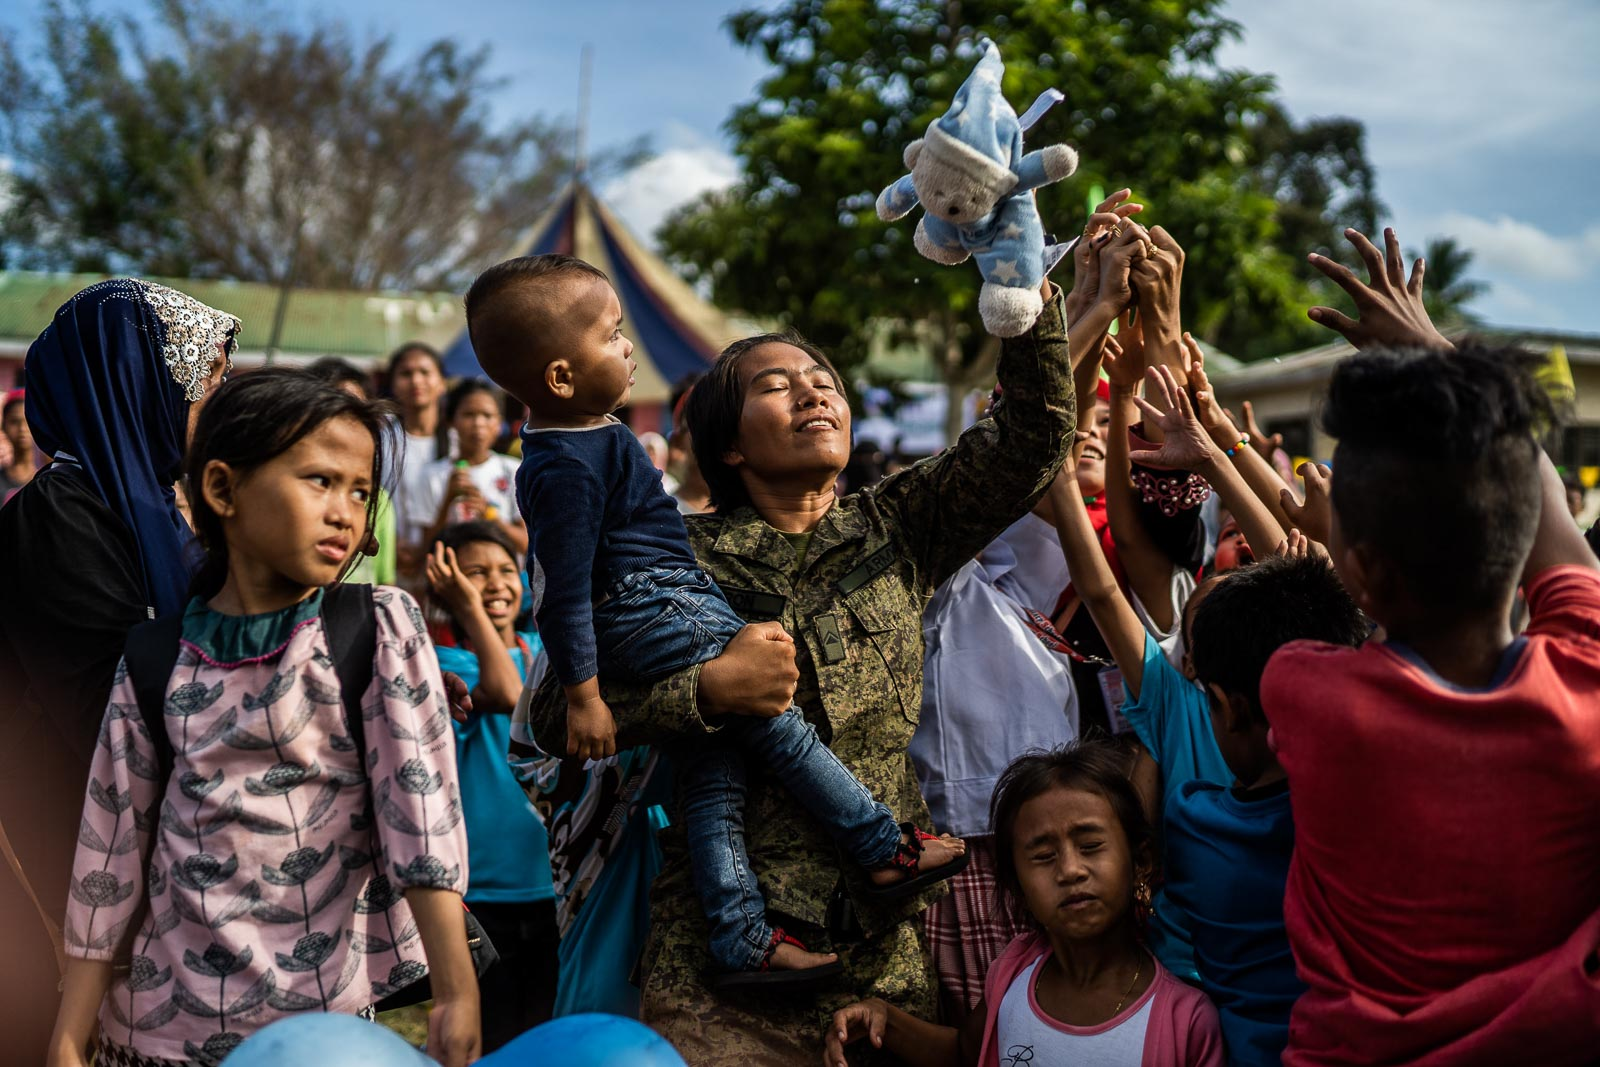 NEW REALITY. A soldier catches a stuffed toy for a child during the Festival of Love and Peace in Mohammad Ajul, Basilan, on October 4, 2019.  Photo by Martin San Diego